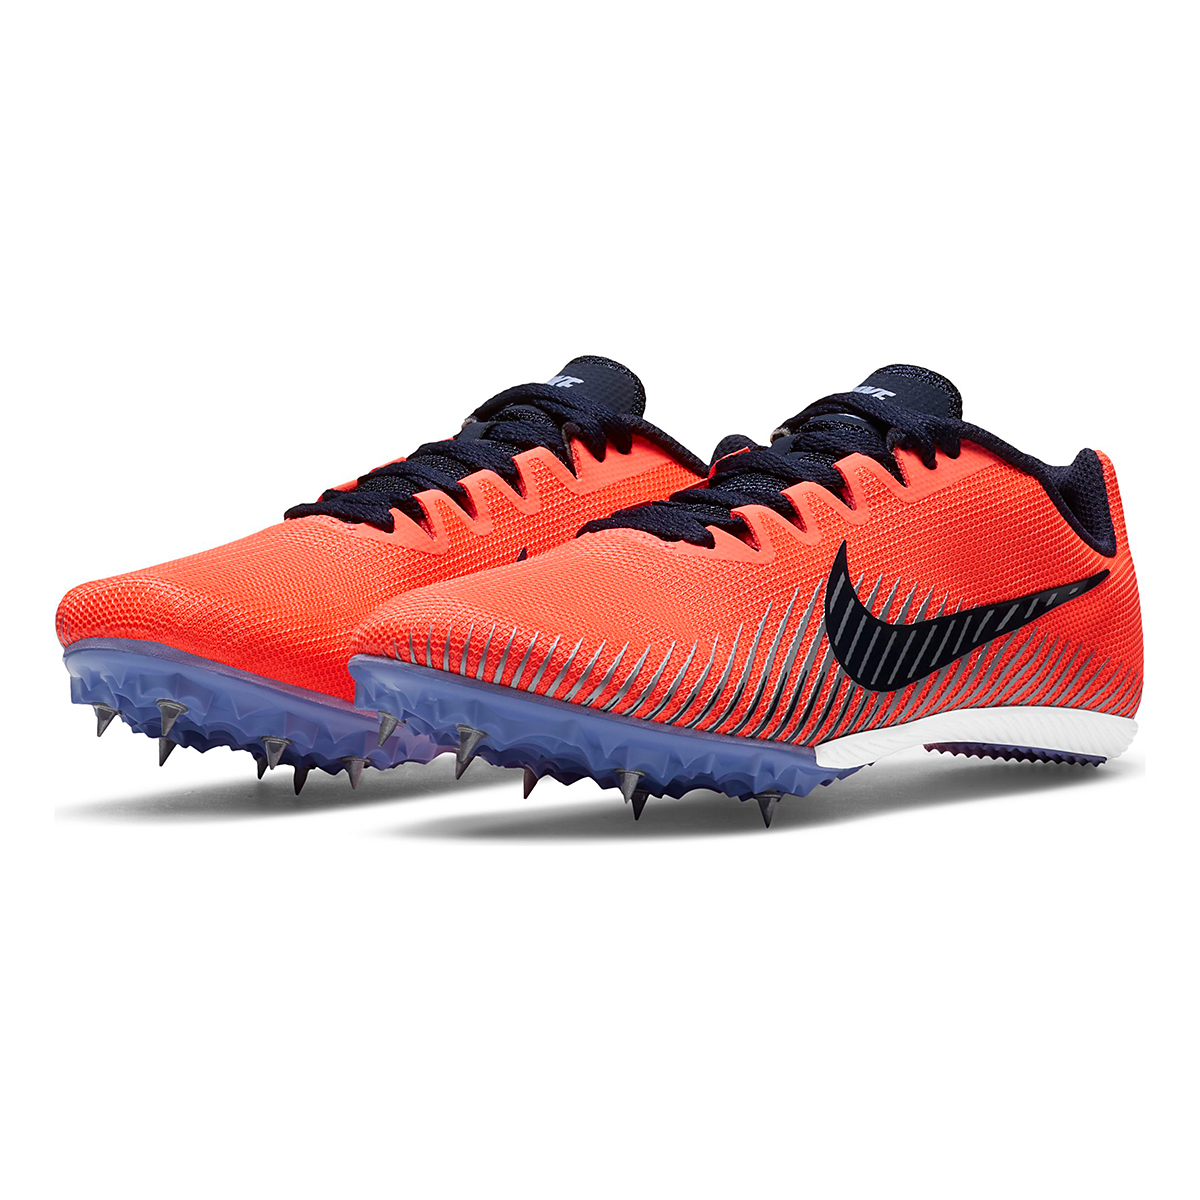 Women's Nike Zoom Rival M 9 Track Spikes - Color: Bright Mango/Blackend Blue - Size: 4 - Width: Regular, Bright Mango/Blackend Blue, large, image 3